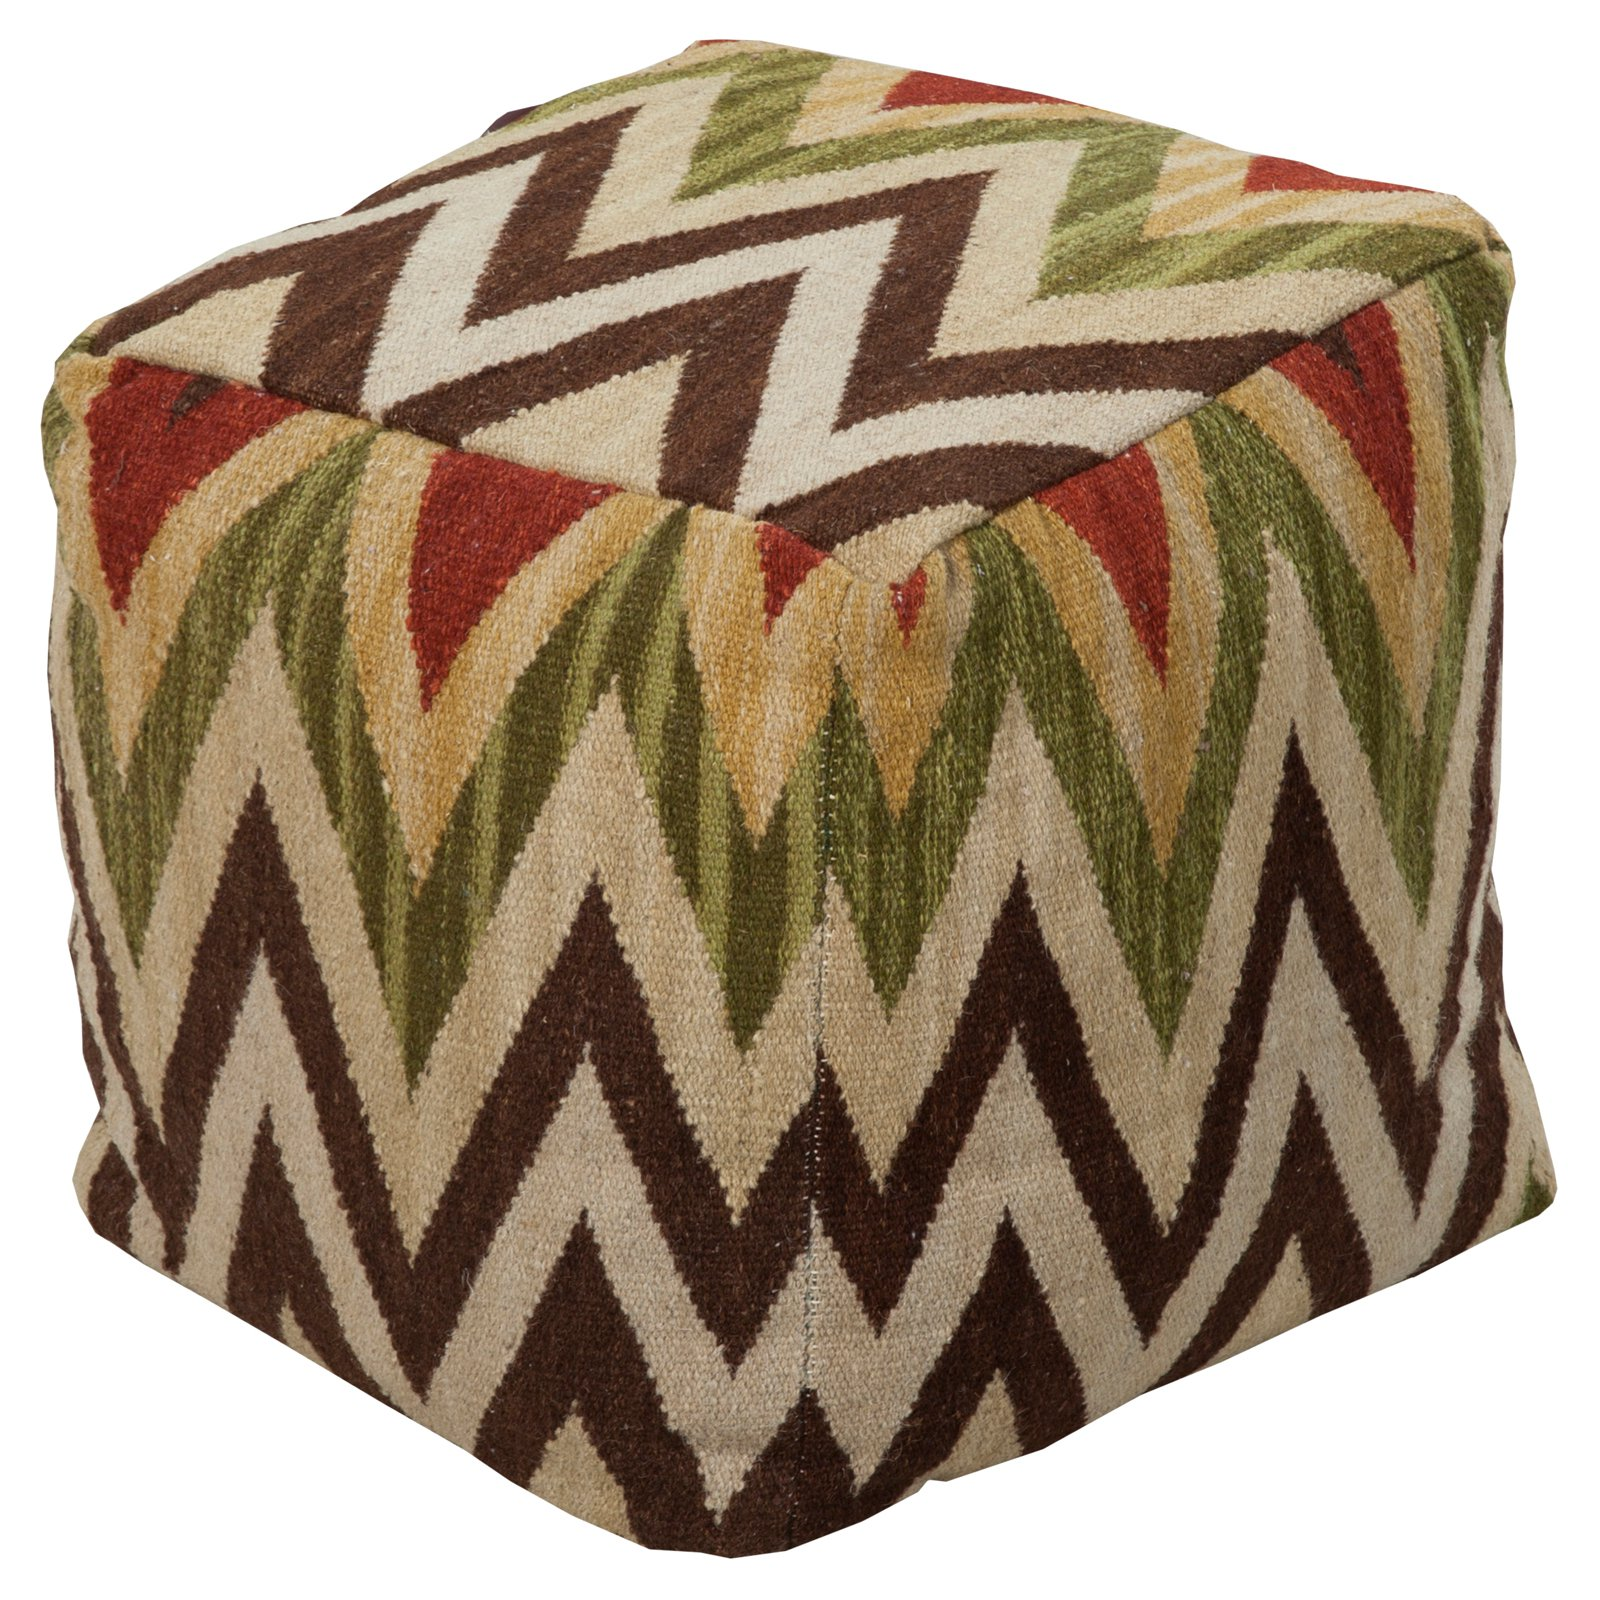 Surya 18 in. Cube Wool Pouf Khaki   Moss by Surya Rugs